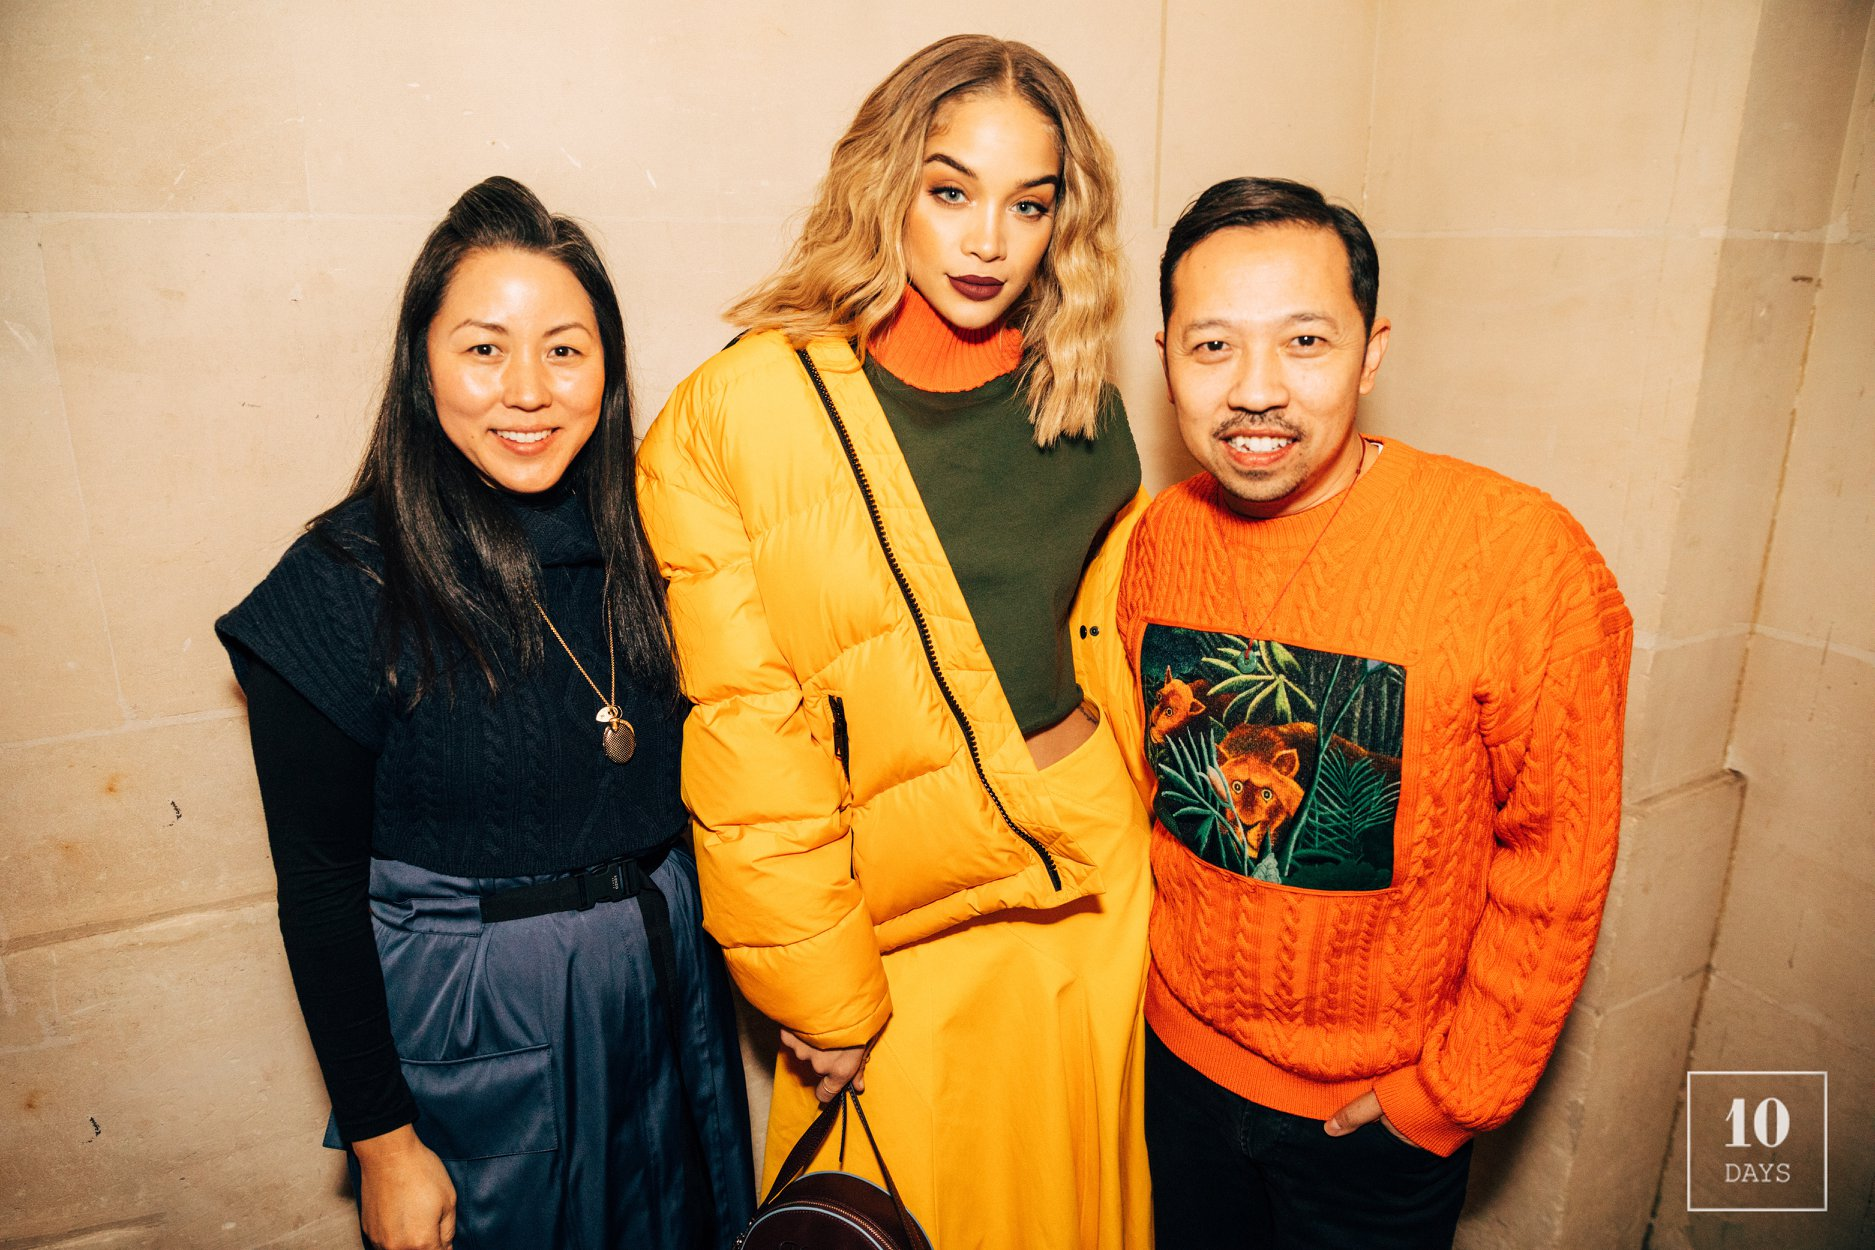 [ARCHIVES MAR. 18] Frontrow at Kenzo Collection Memento 3 AW18/19